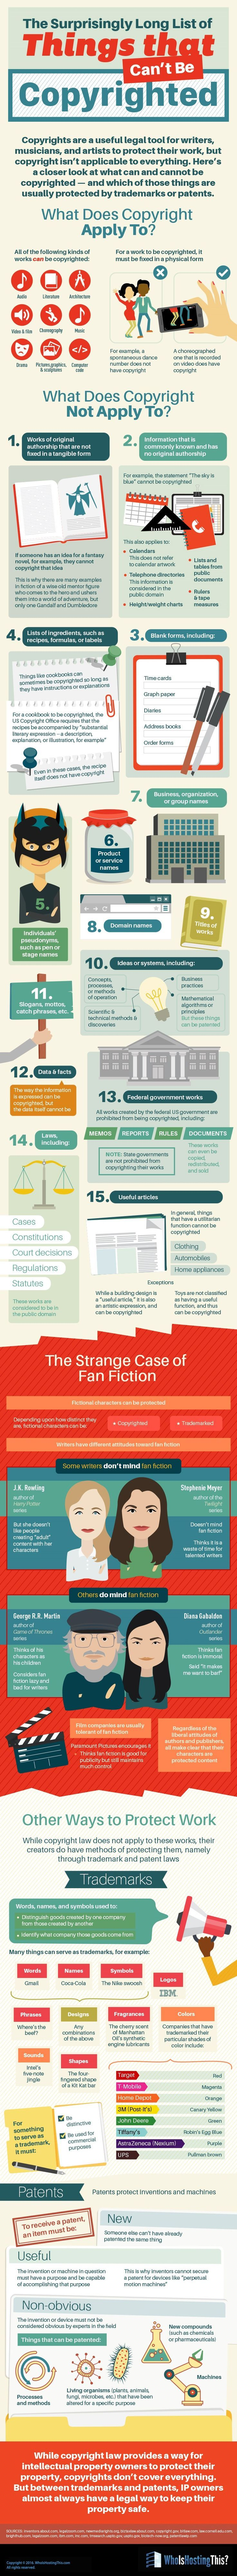 This is a great list....The Long List of Things that Can't Be Copyrighted #Infographic